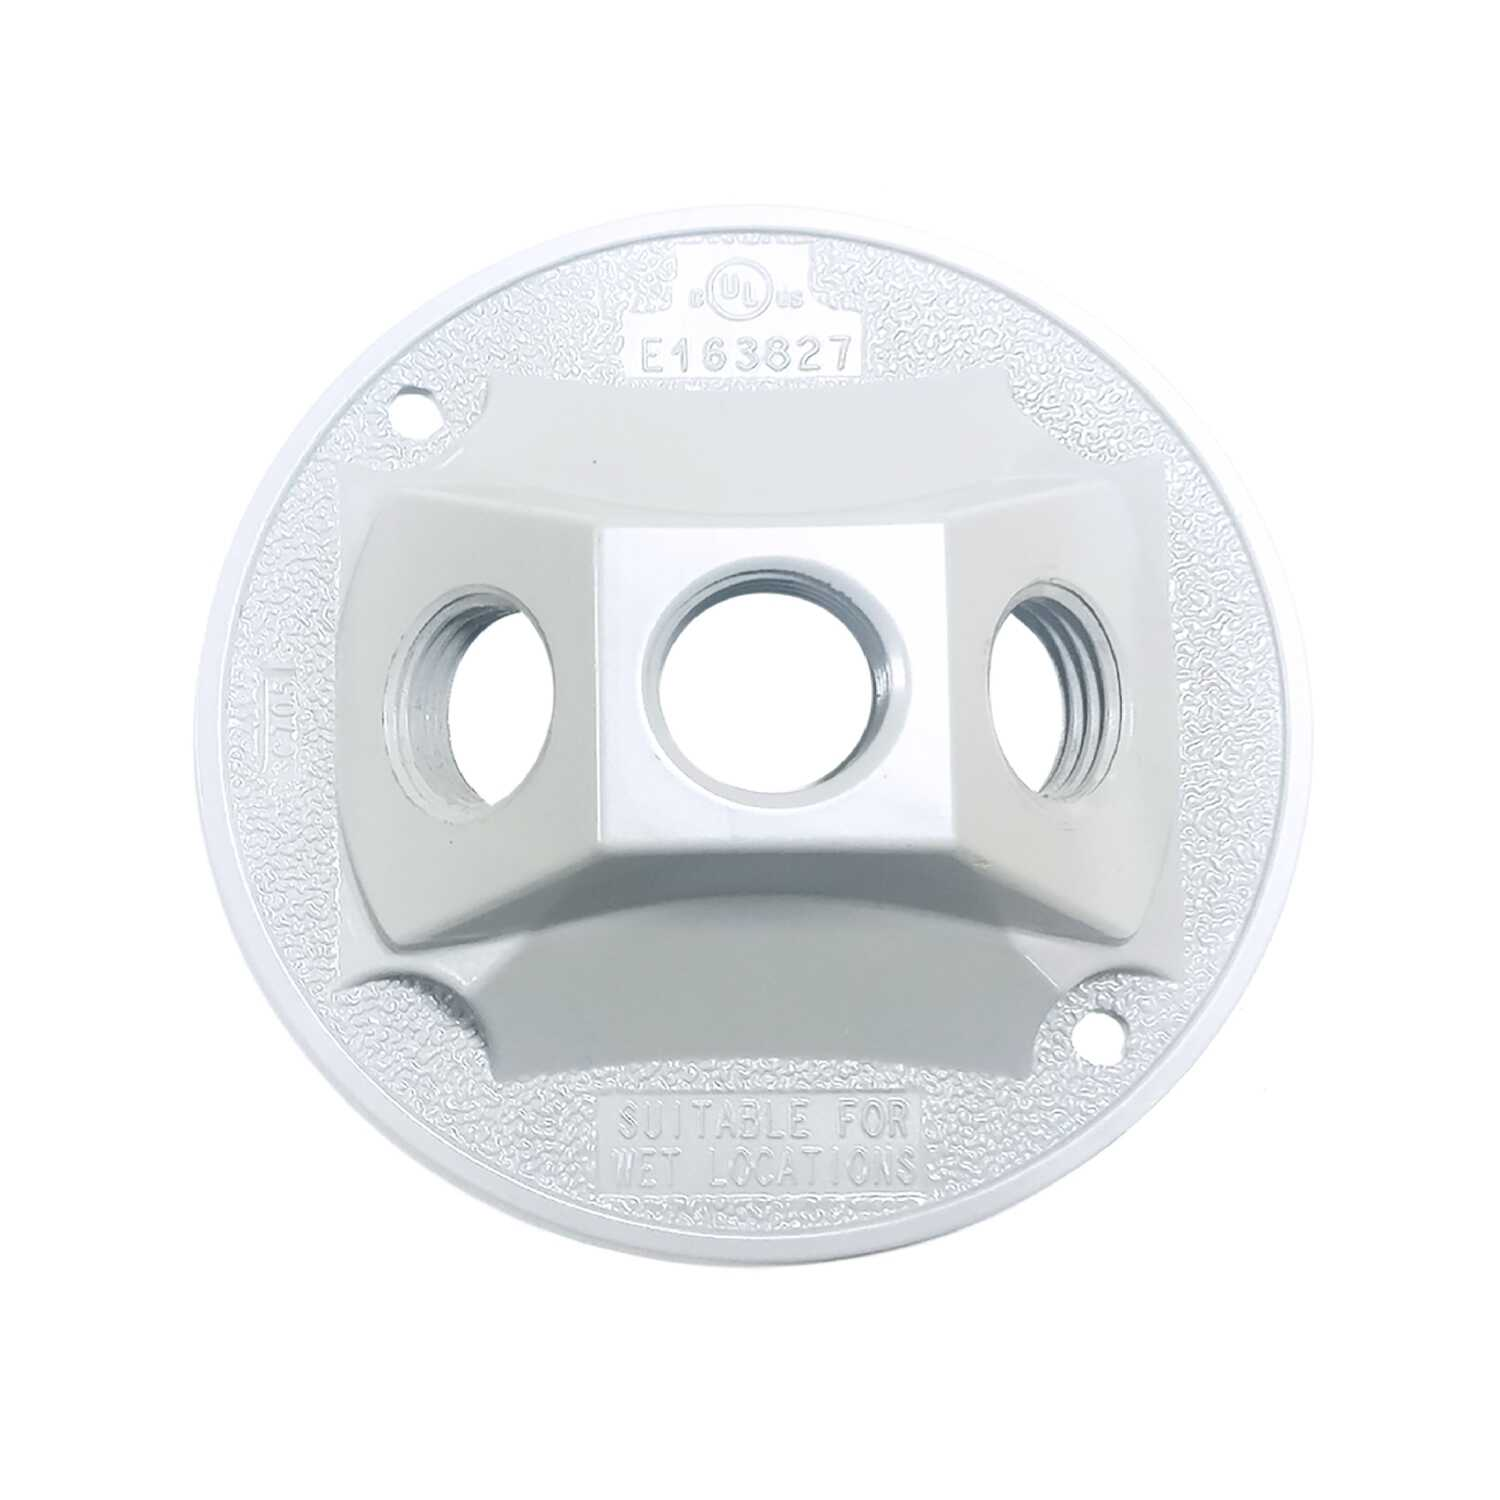 Sigma  Round  Aluminum  Electrical Cover  For Light Fixtures